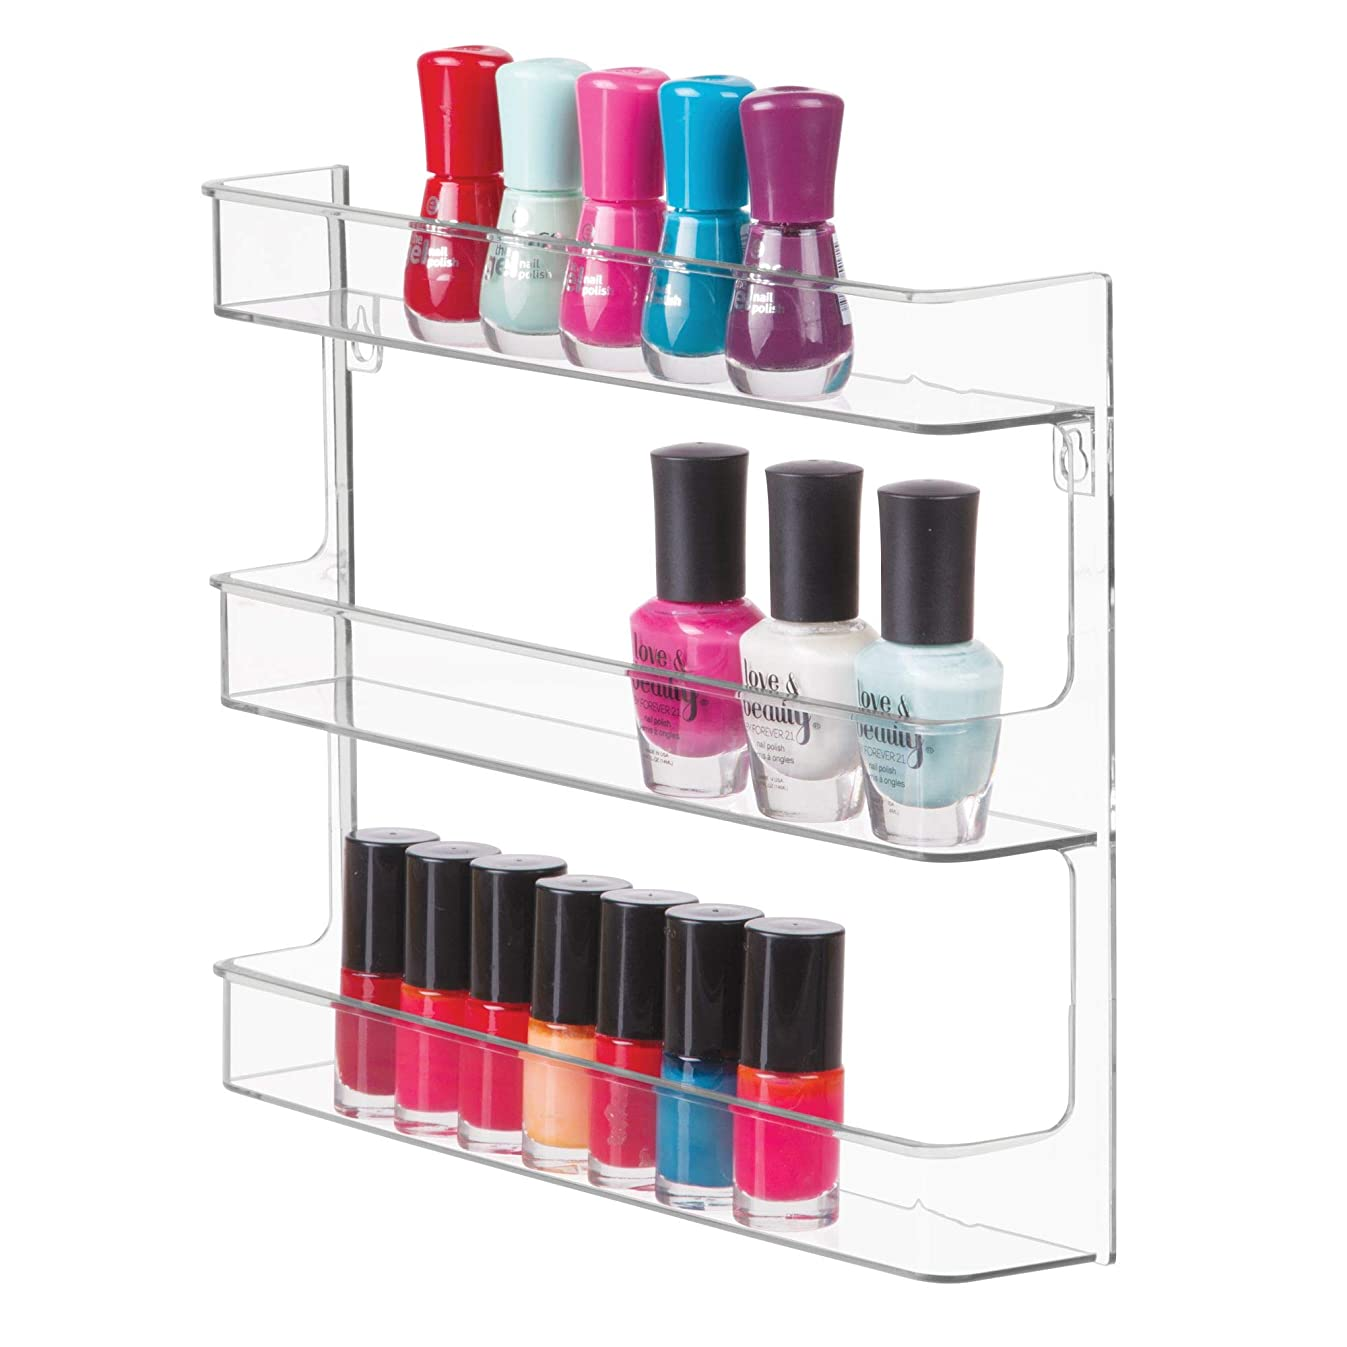 InterDesign Clarity Wall Mount Nail Polish Storage Rack with 3 Shelves for Bathroom, Vanity, Closet, Bedroom, Clear